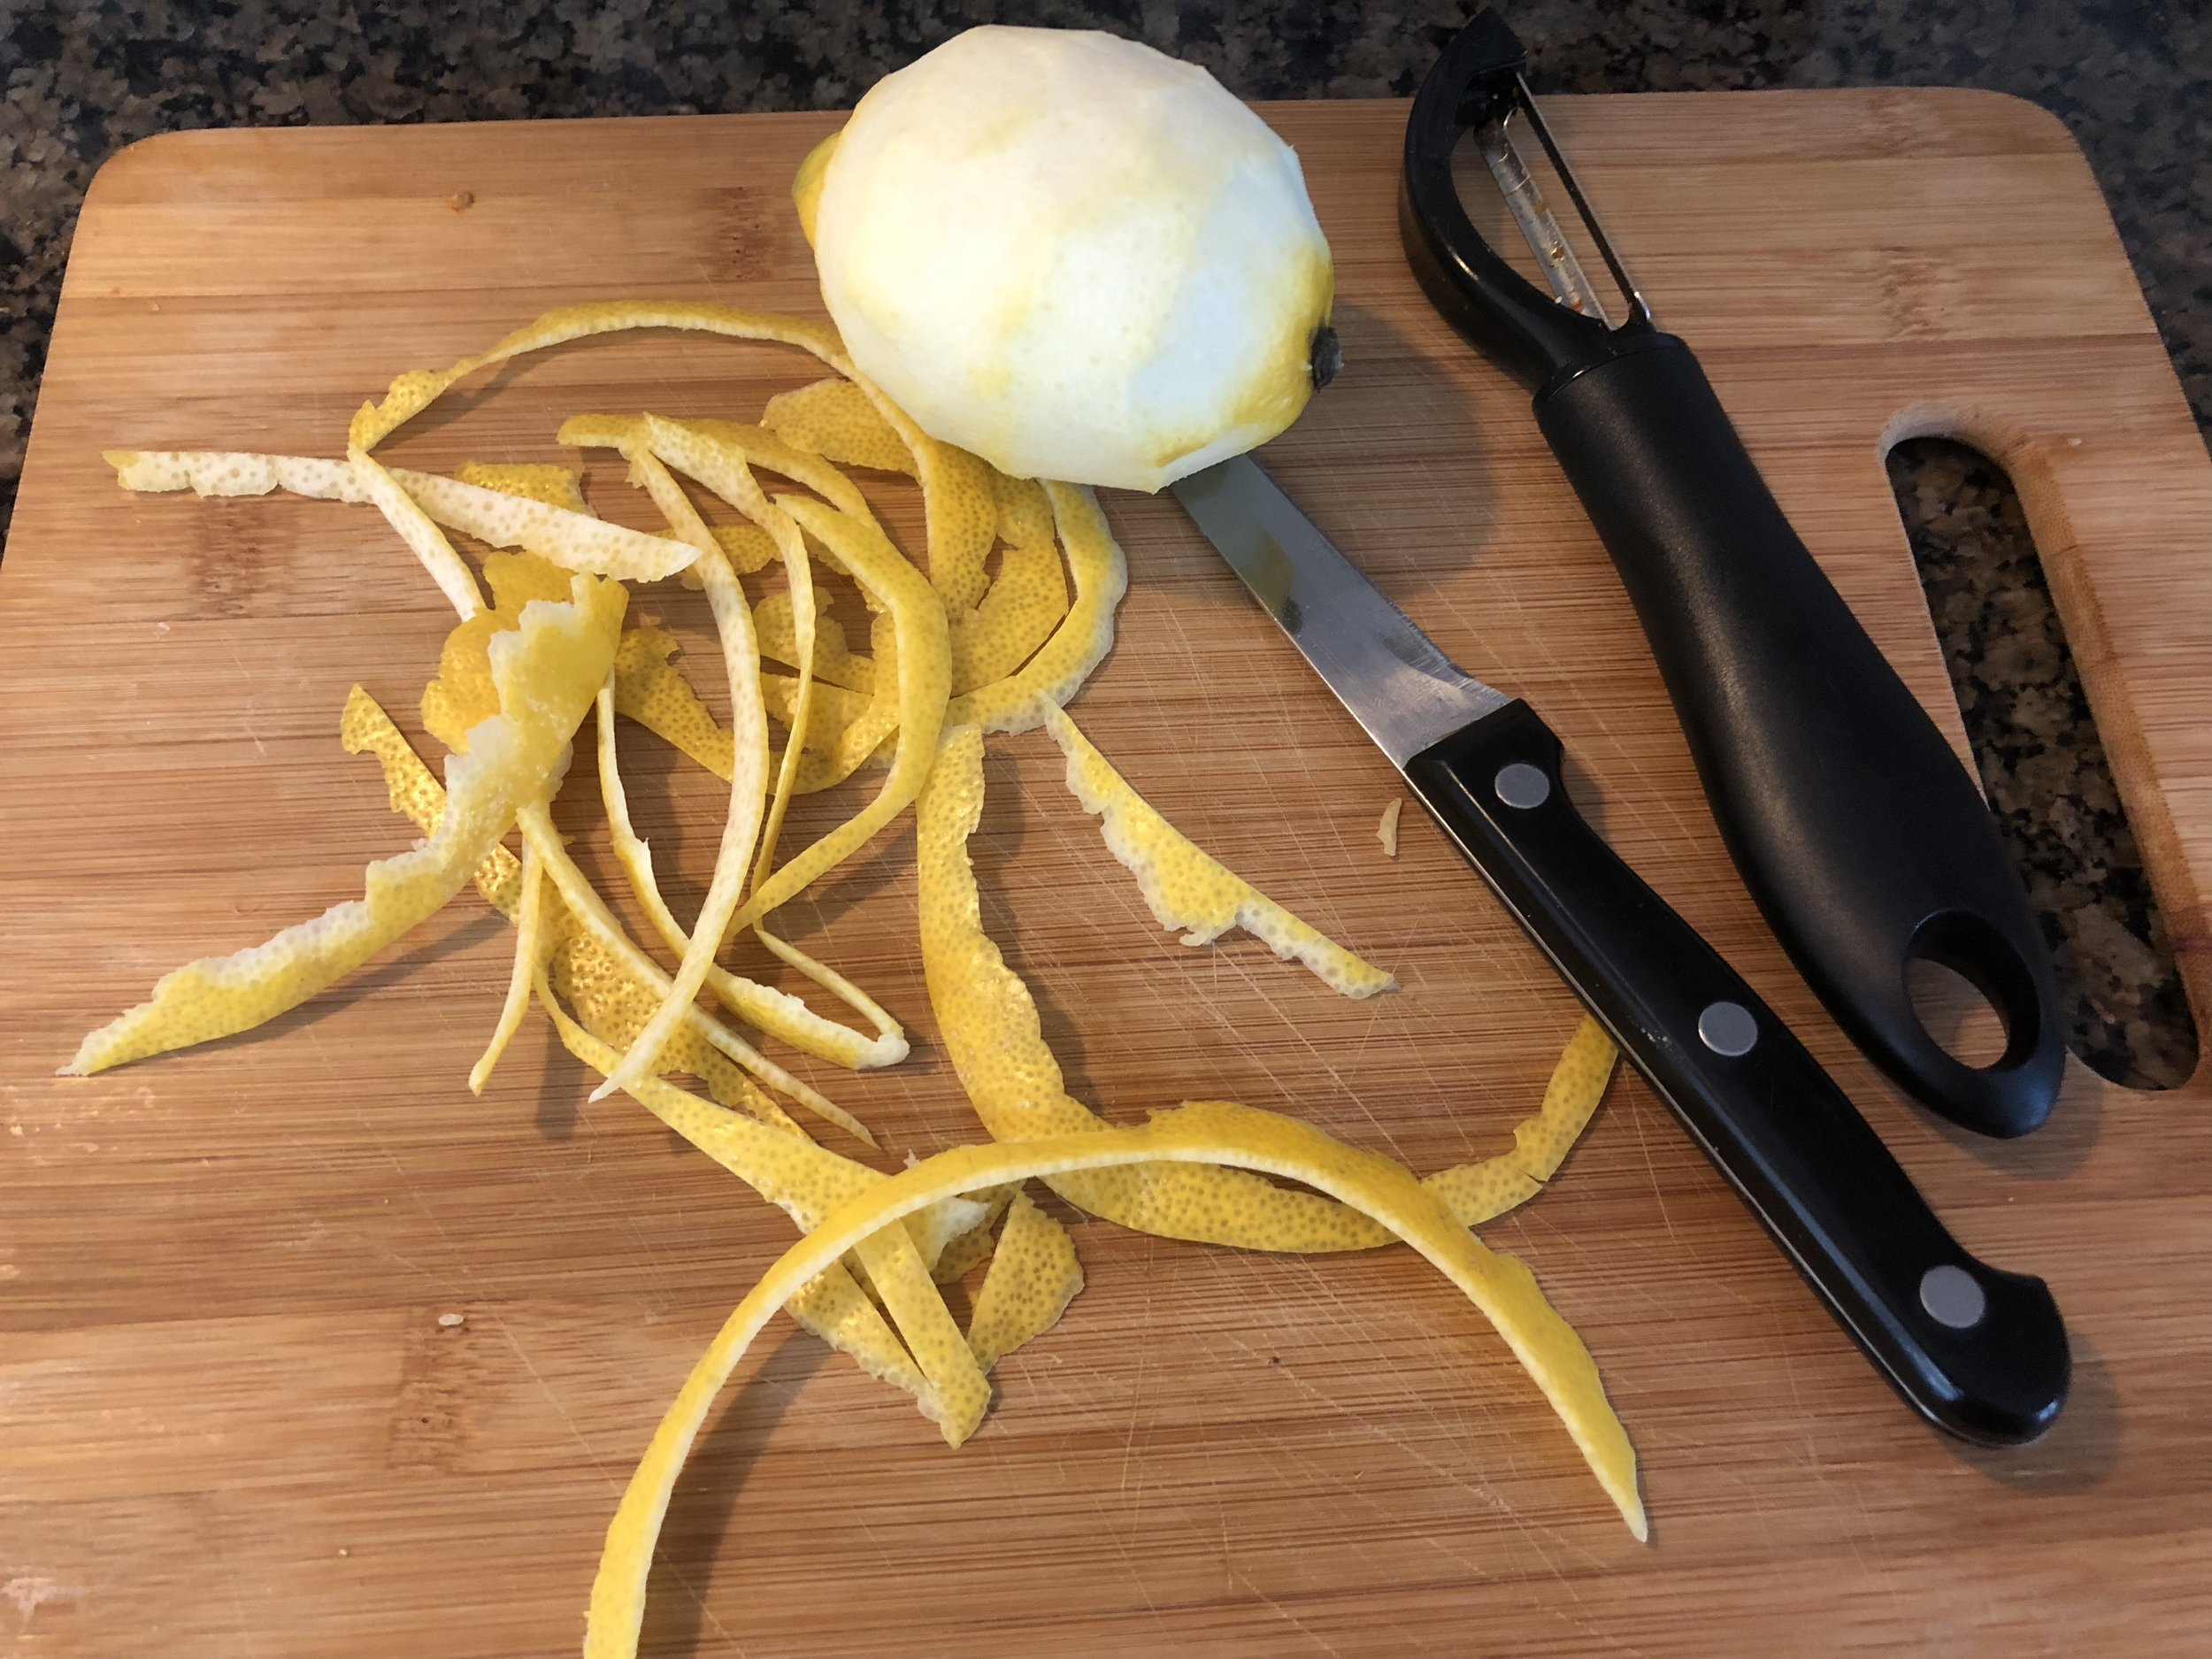 Using your vegetable peel, peel the lemon. *They sell specialty tools for peel peel for garnish, but I used my traditional vegetable peeler